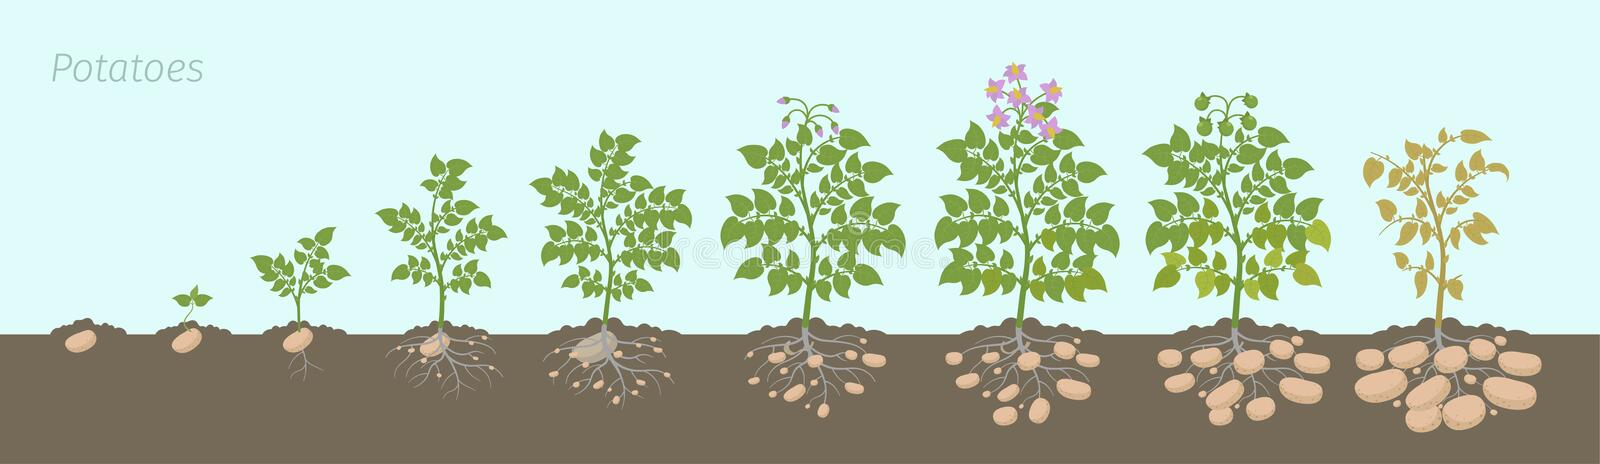 Crop stages of potatoes plant. Growing spud plants. The life cycle. Harvest potato growth progression In the soil. Crop stages of potatoes plant. Vector vector illustration